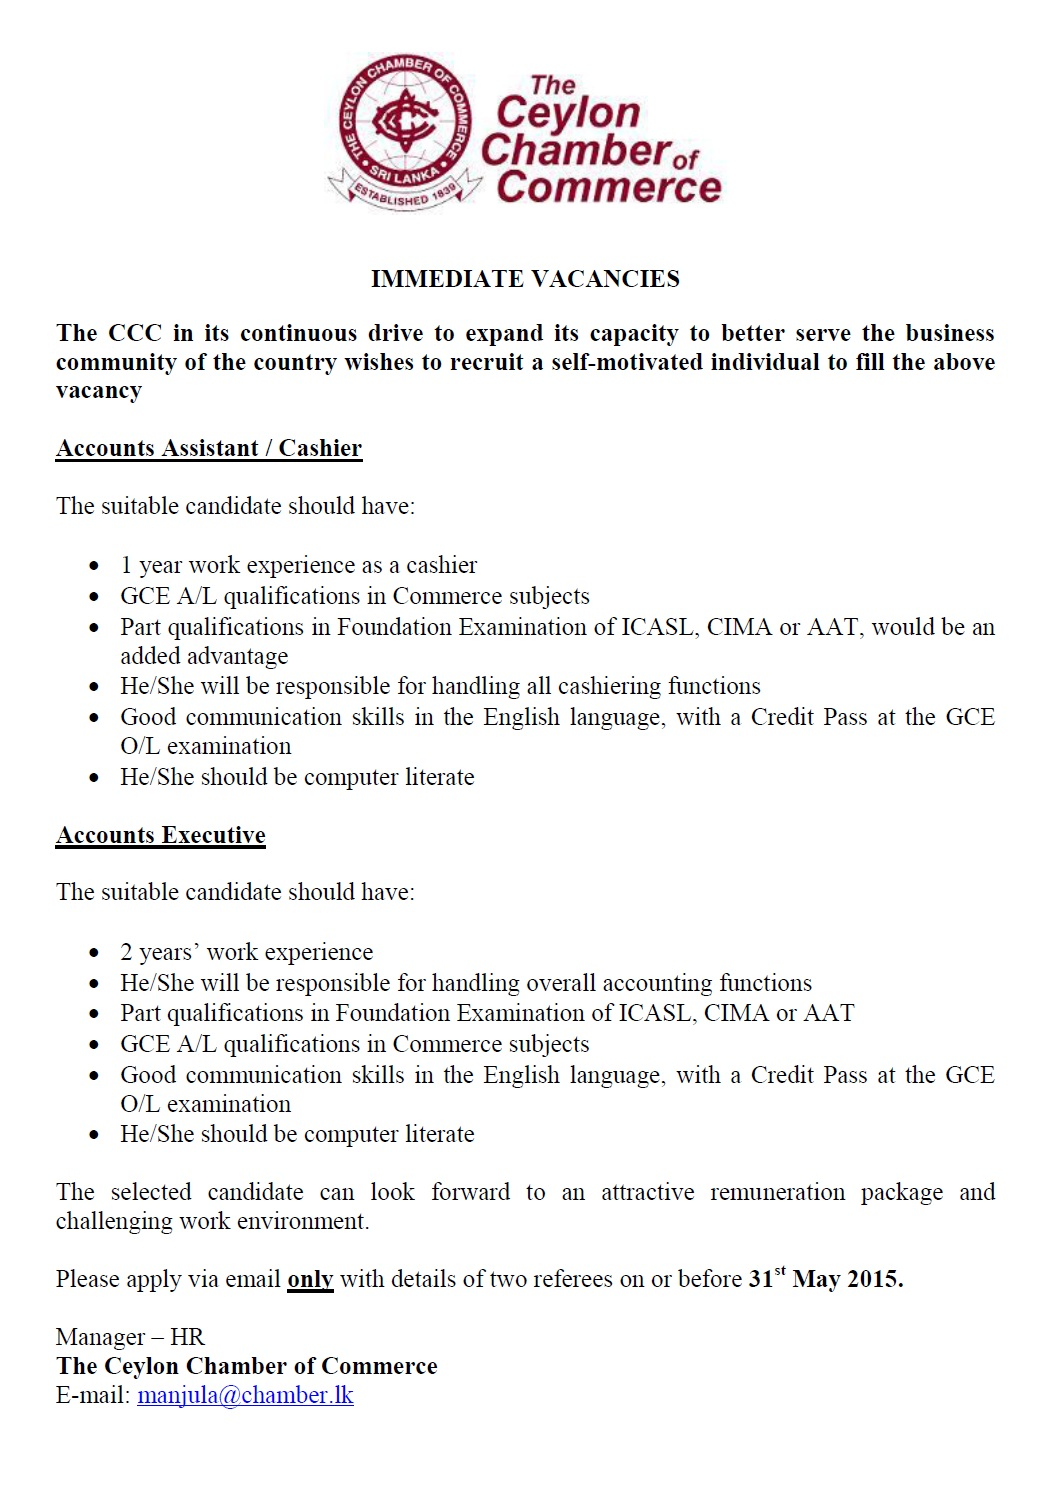 accounts assistant cashier accounts executive job vacancy in 20150521ei5qm2dzigyonqq jpg